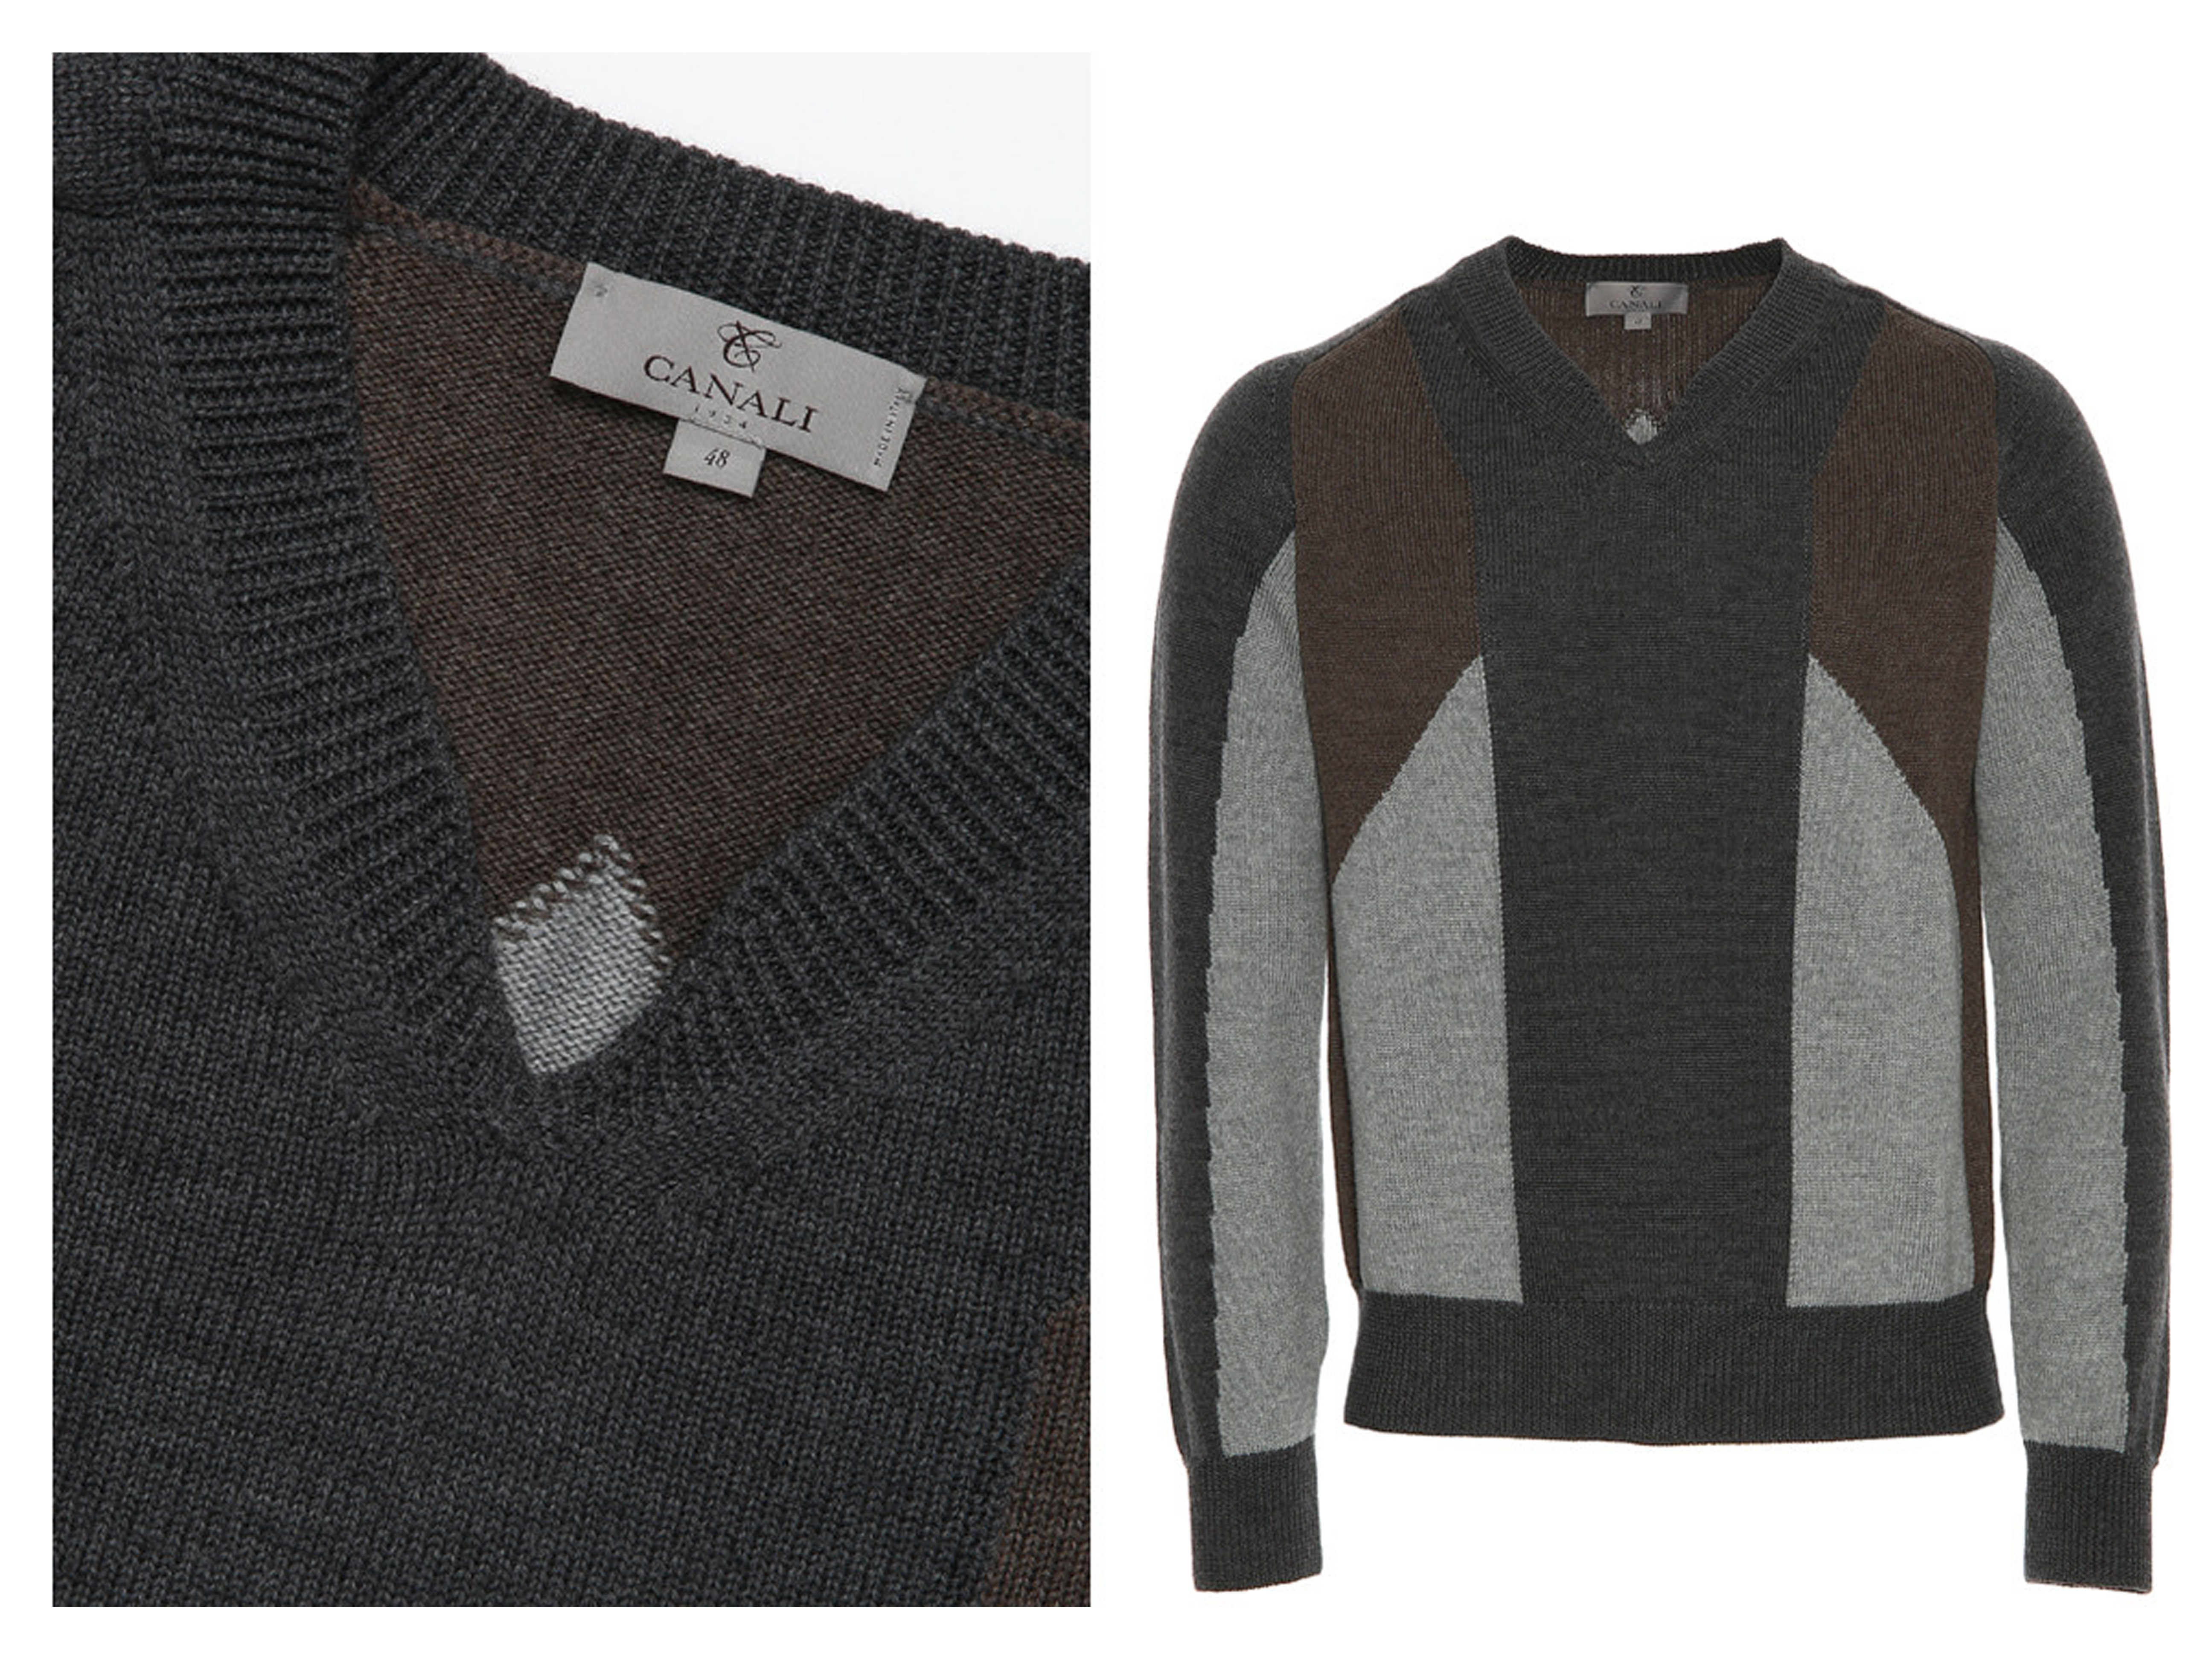 Canali Mens Tailoring Sweater